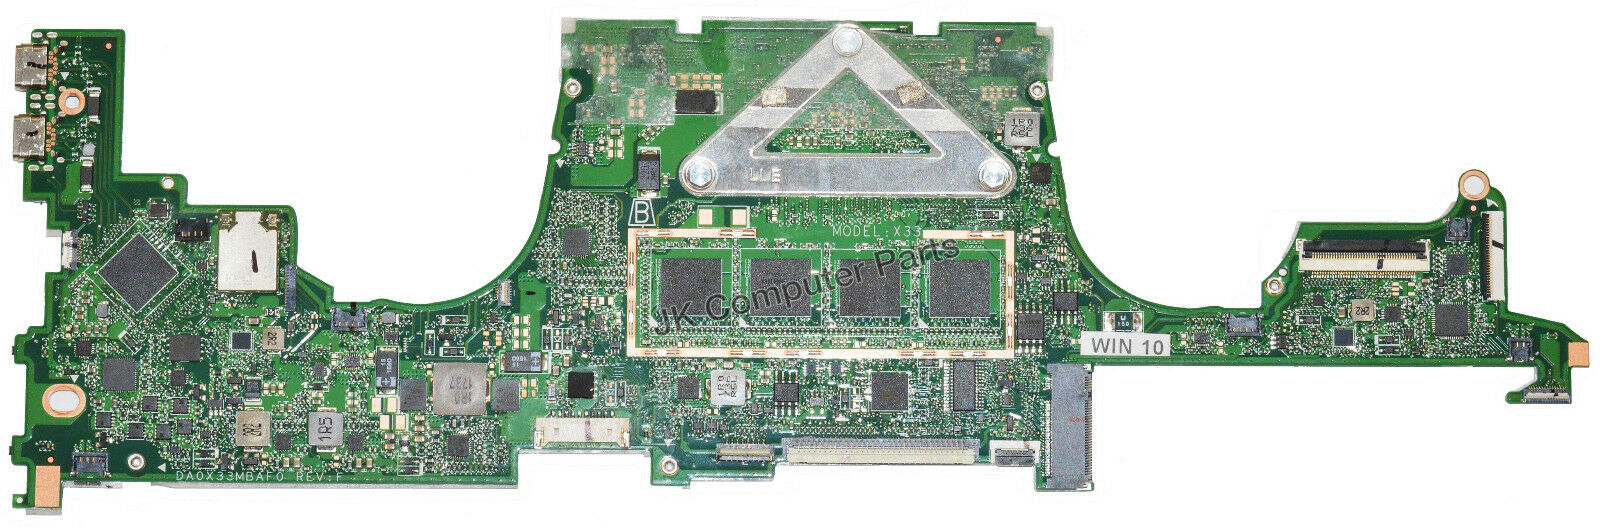 538409-001 Intel GM965 MOTHERBOARD for HP Compaq 510 610 Series LAPTOPS A